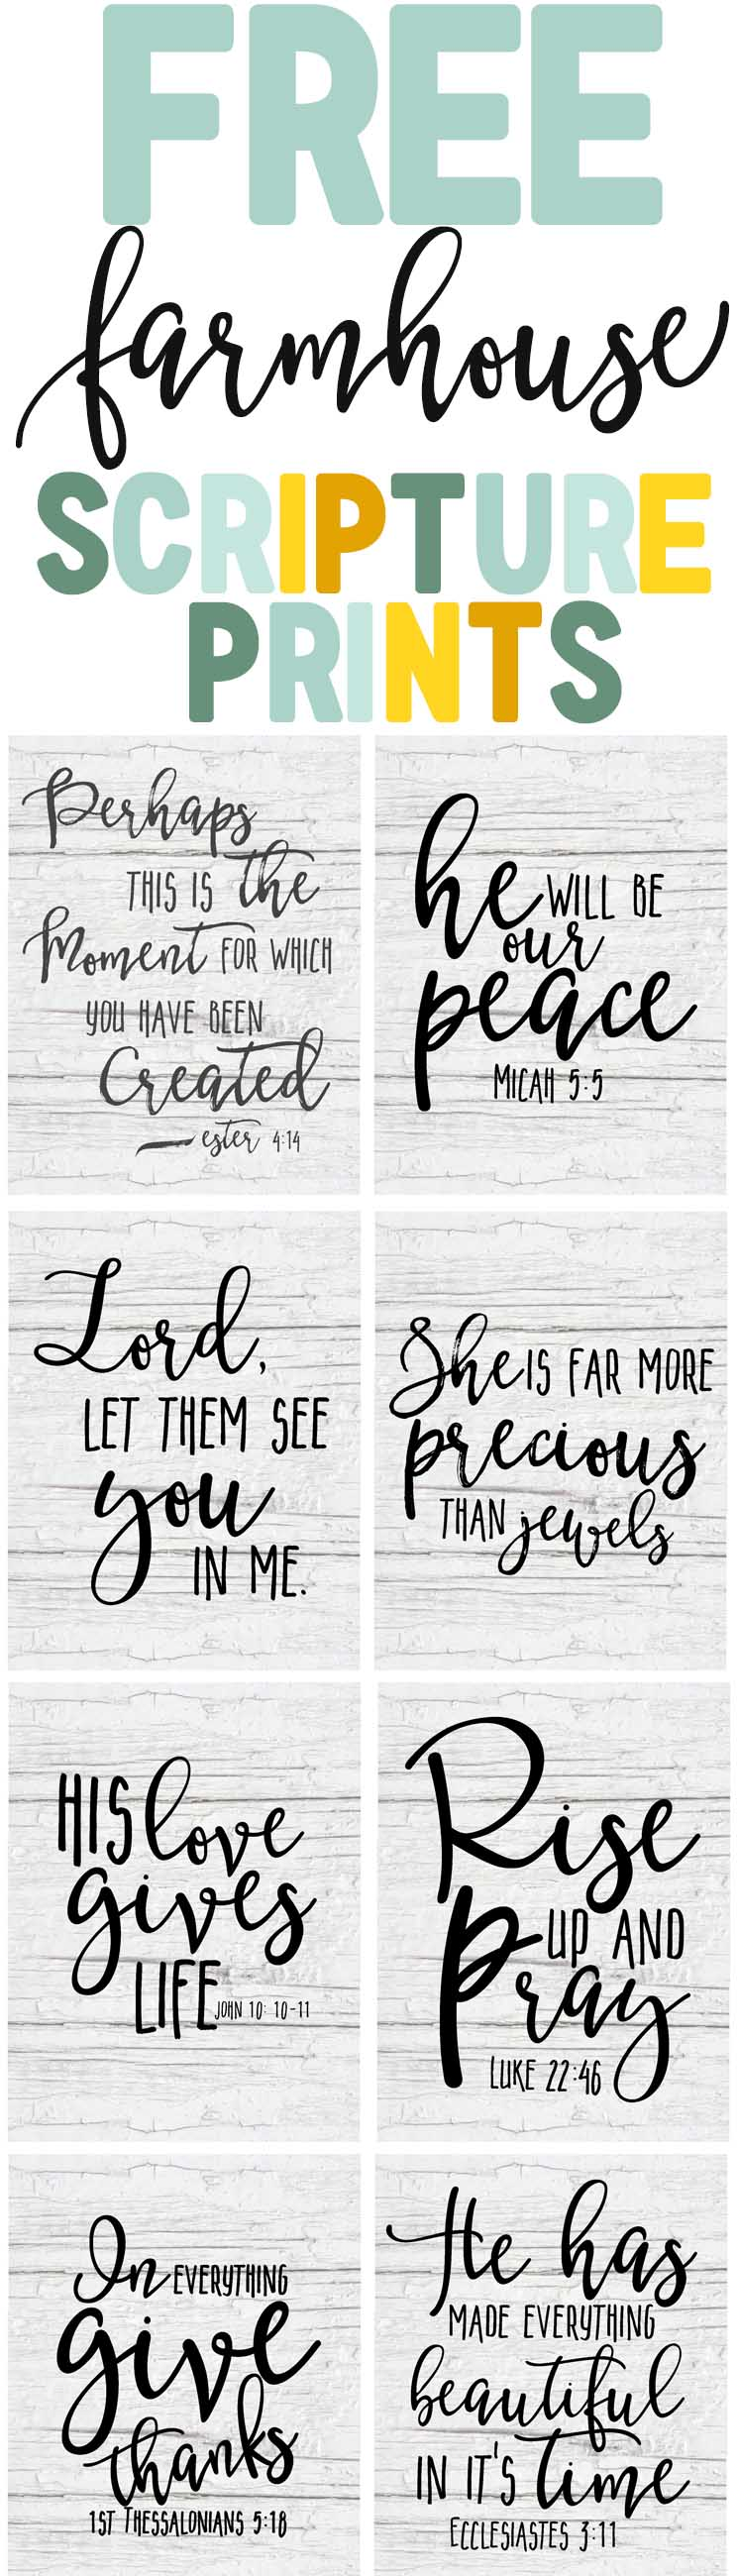 photo regarding Free Printable Scripture Word Art titled Absolutely free Farmhouse Scripture Printables - The Mountain Opinion Cottage